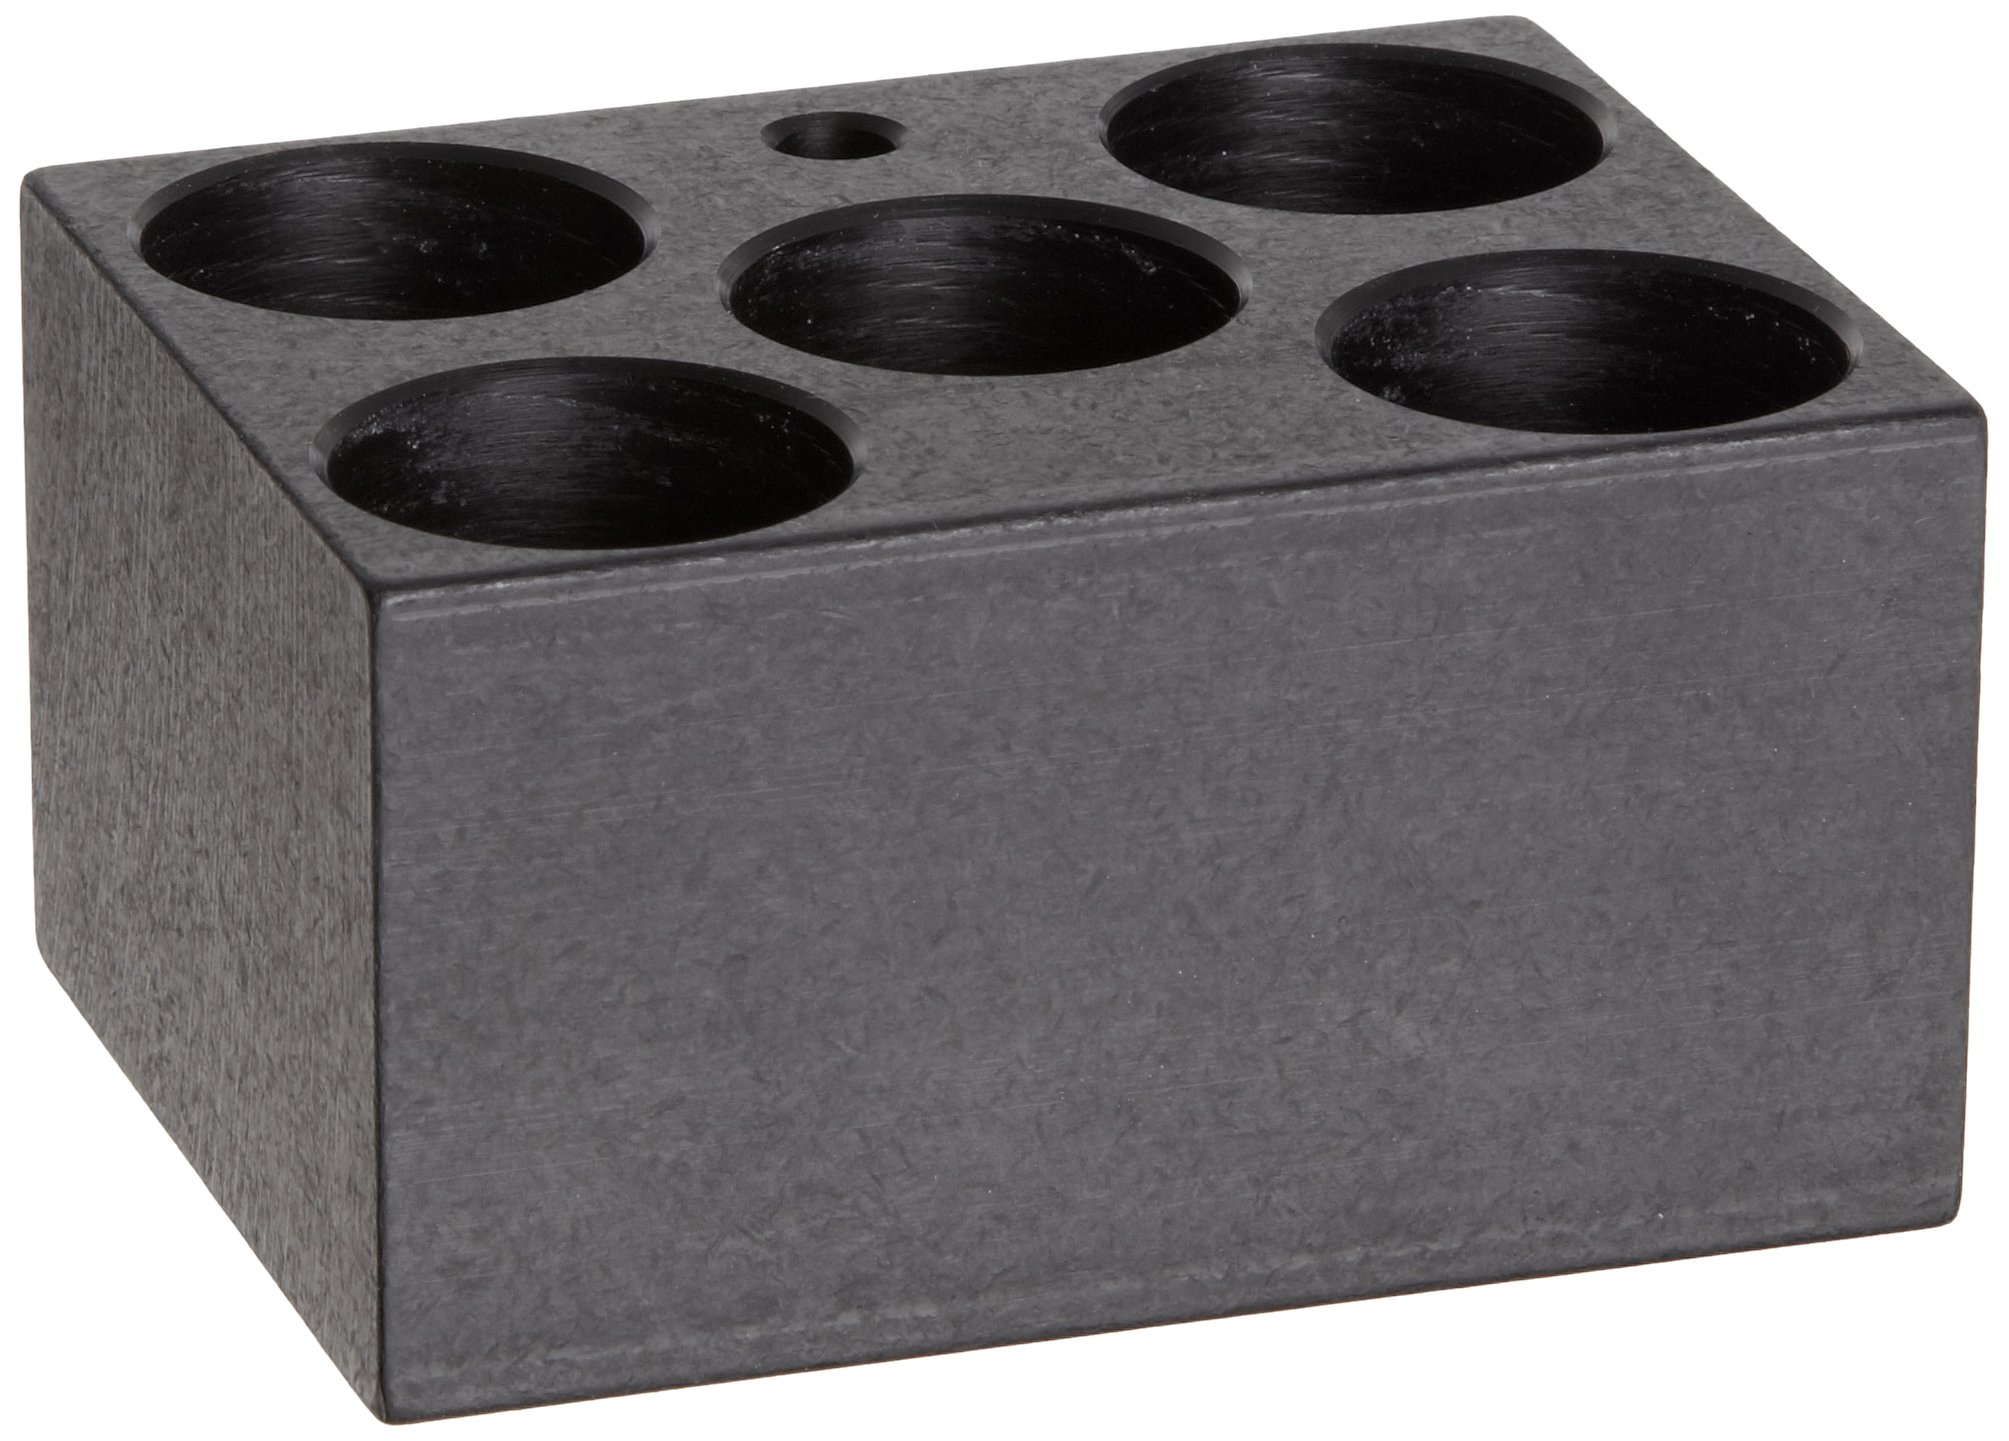 Talboys 949127 Anodized Aluminum Conical Bottom Centrifuge Tube Single Heat Block, 5 Well, 29.0mm Well Diameter, 3.75'' Length x 3'' Width x 2'' Height, For 50mL Tube